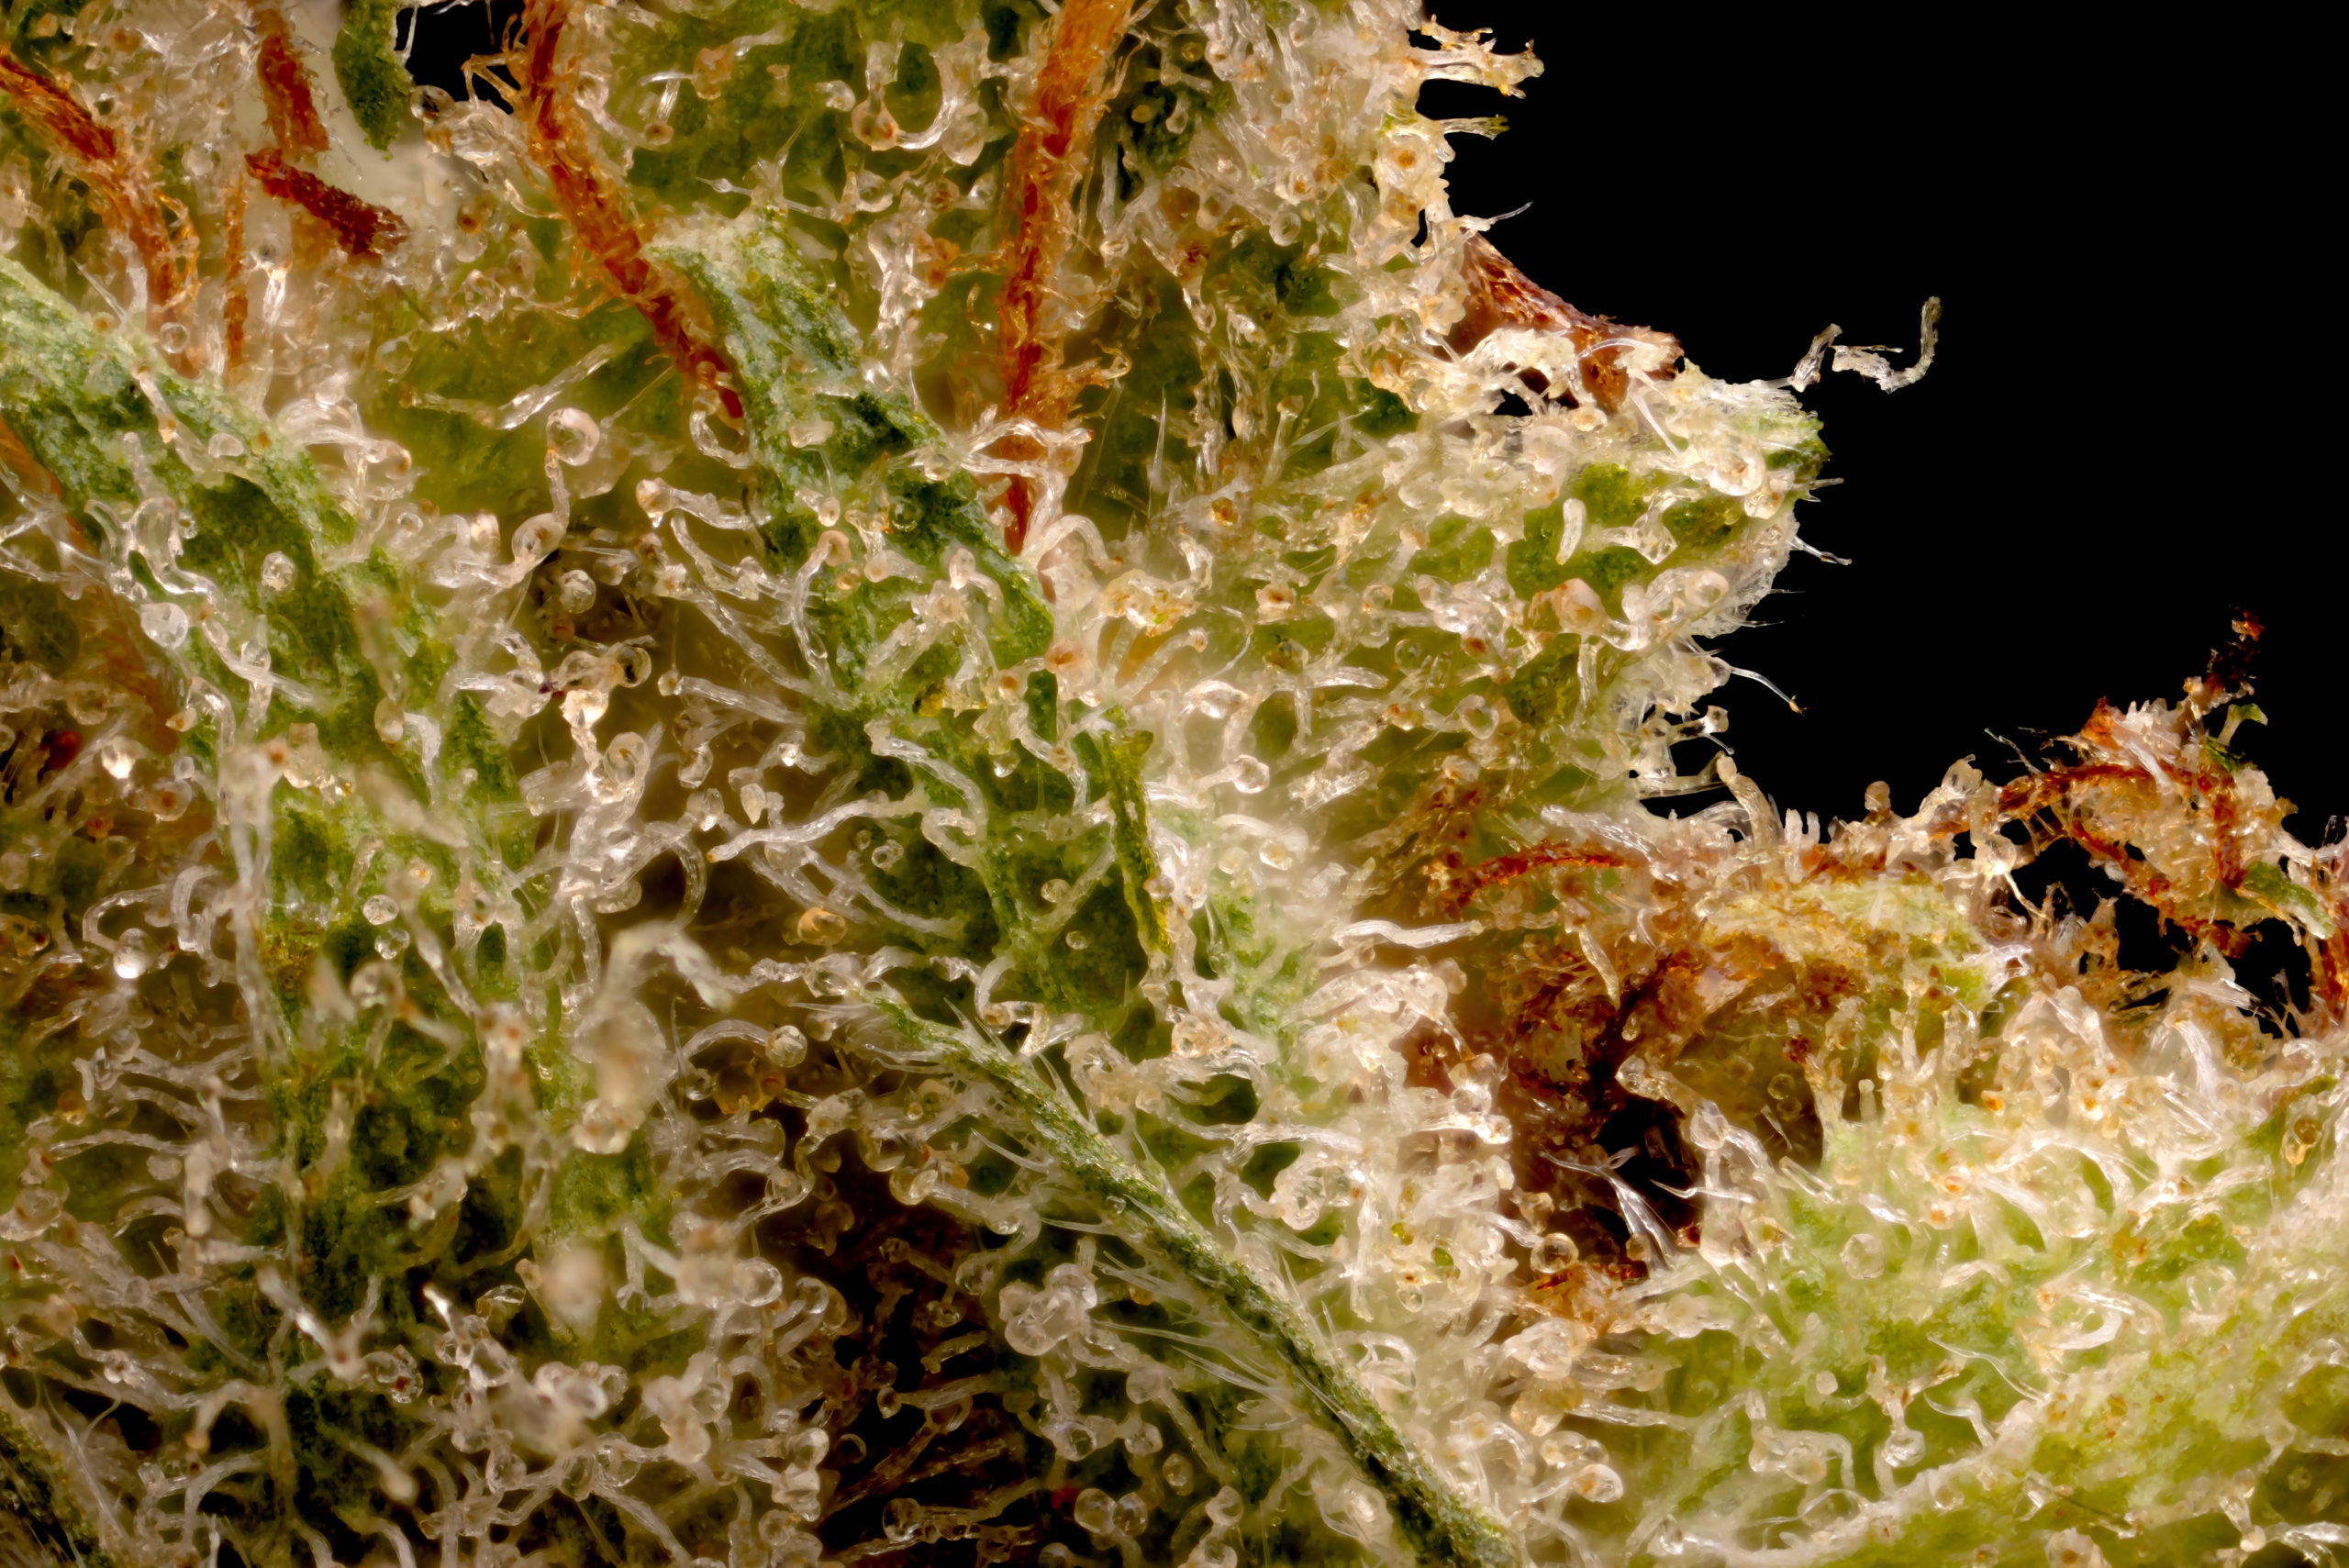 Mango Haze trichome close up.